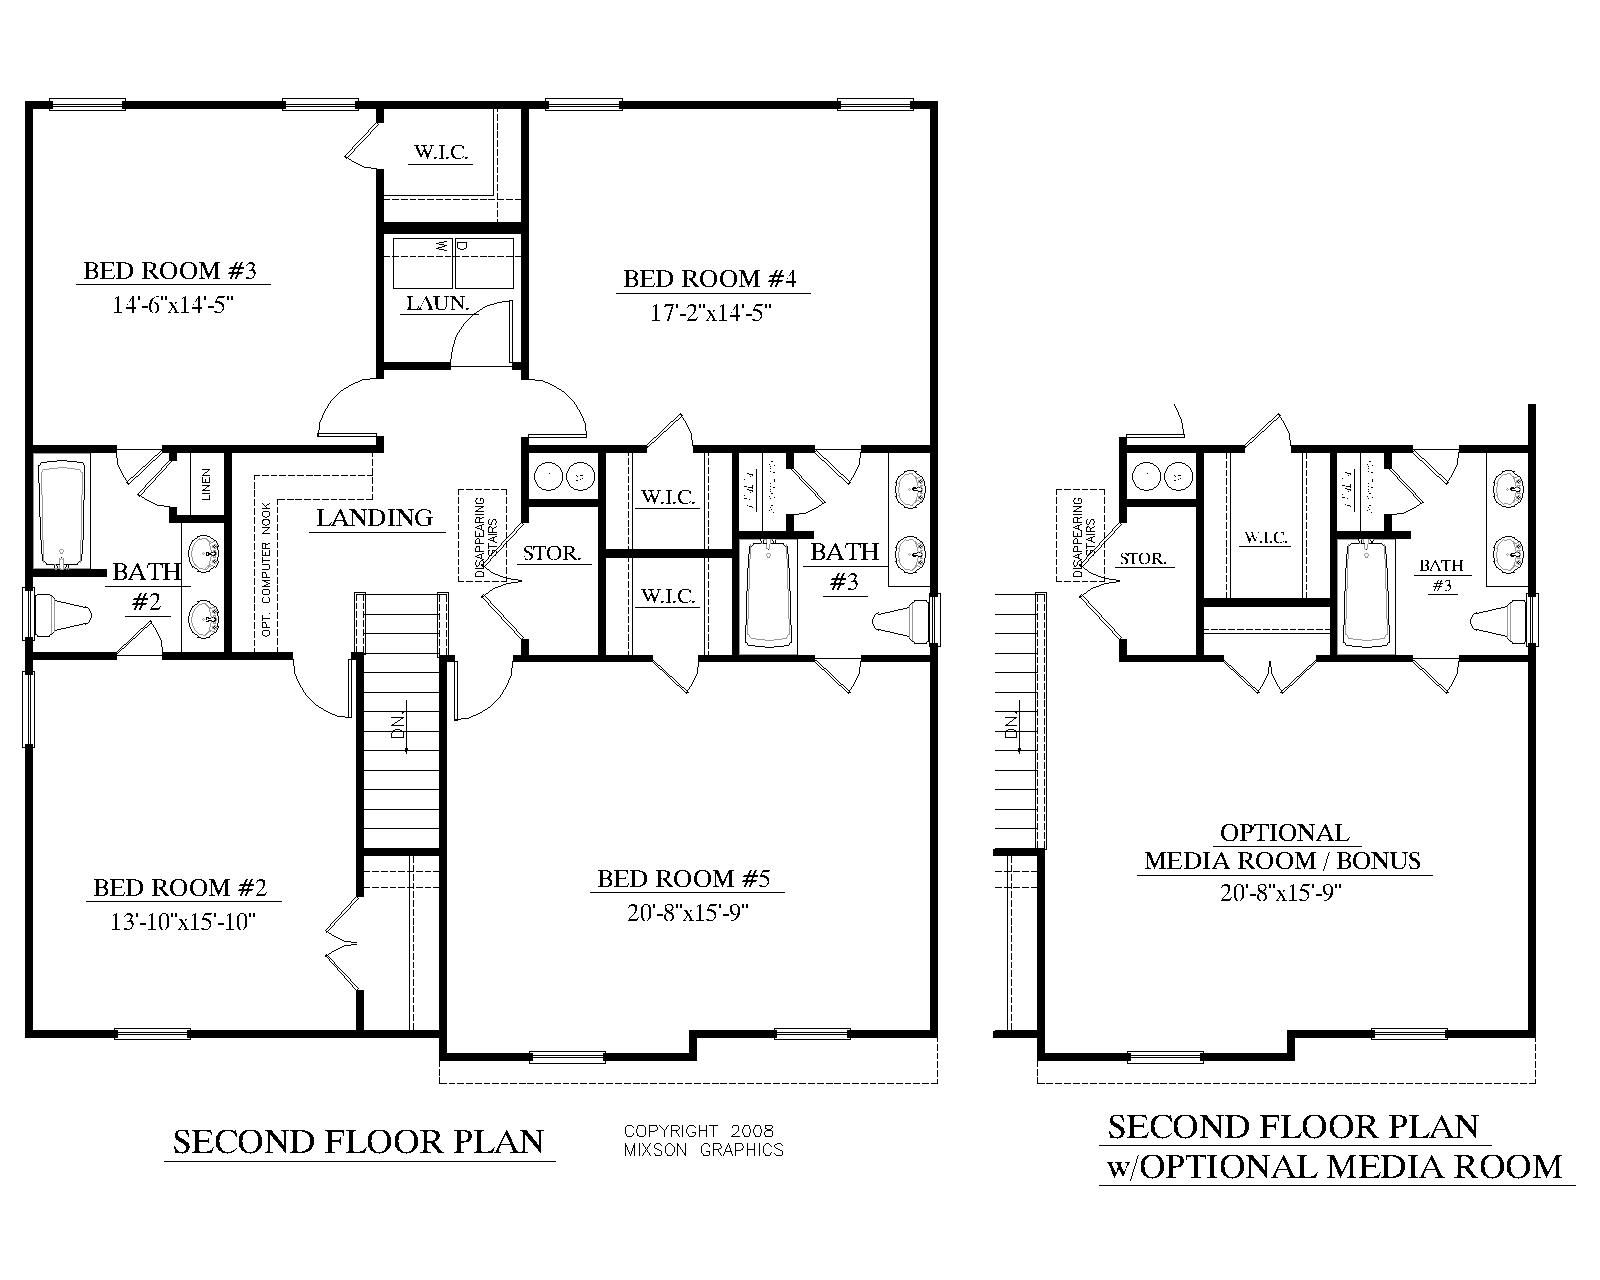 House plan 2691 a mccormick 2nd floor plan 2691 square for Second story floor plan